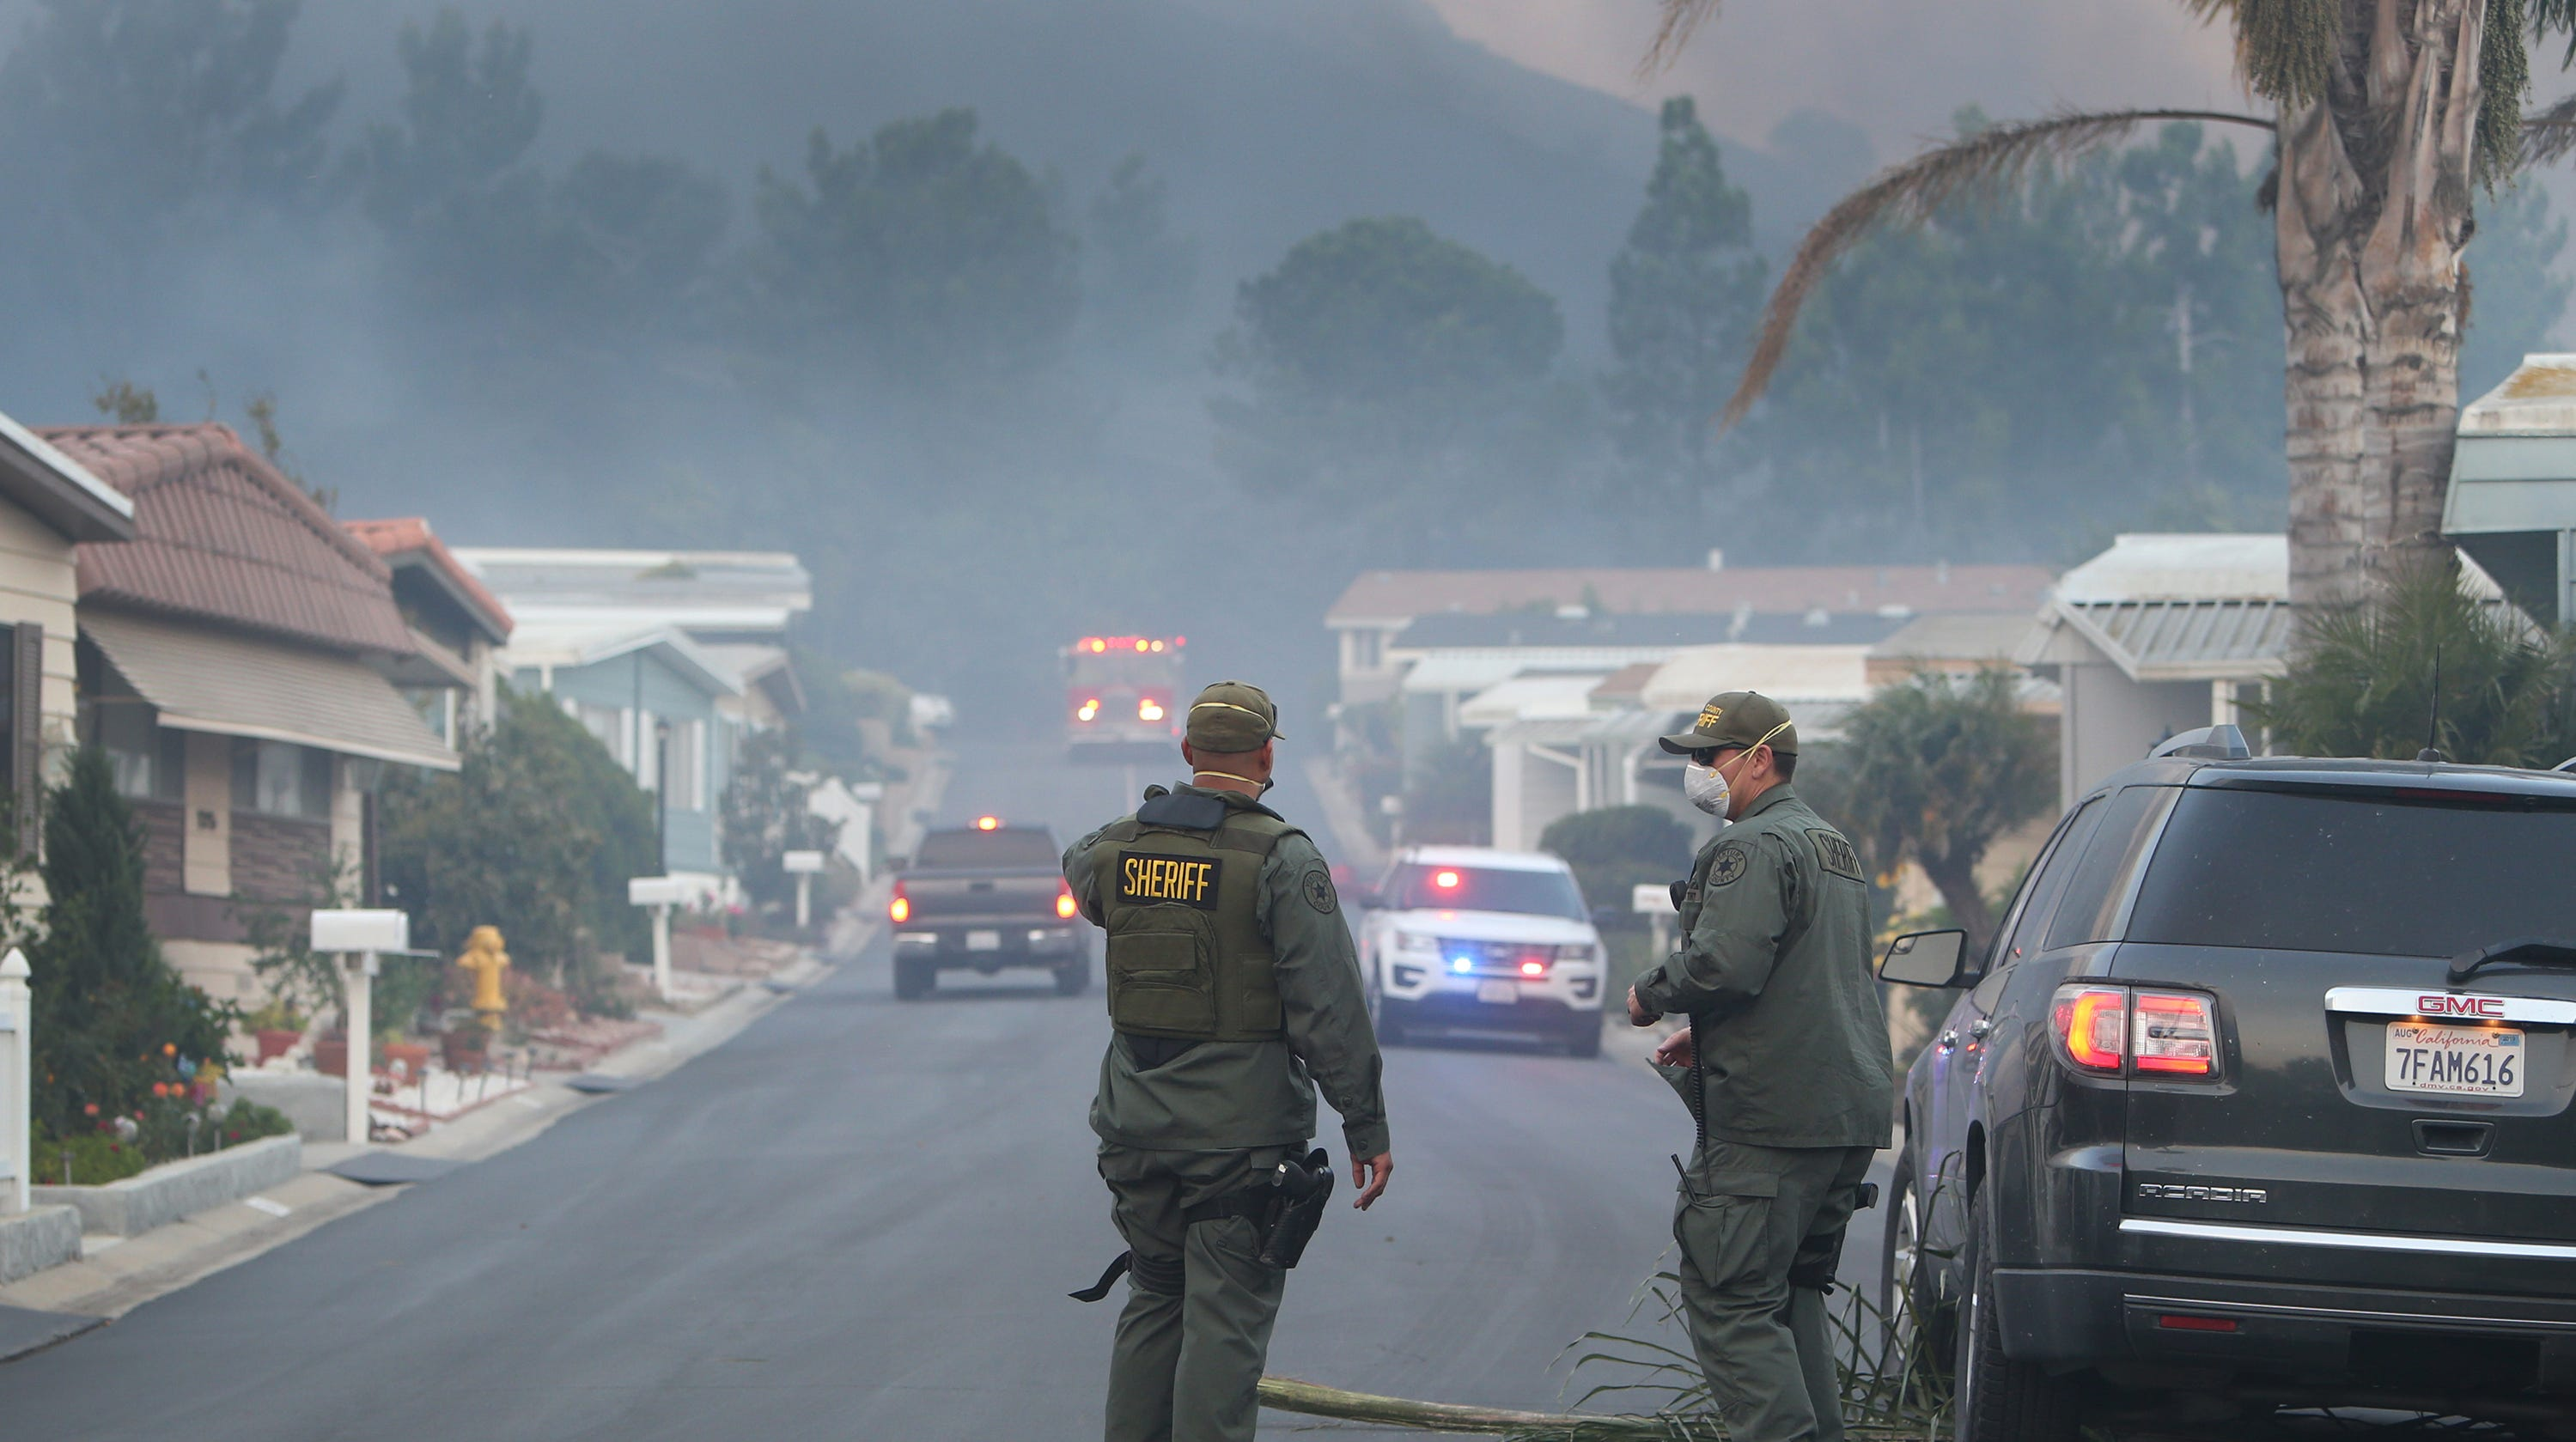 Ventura County Sheriff officers work on evacuating residents from a mobile home park off Old Conejo Road in Newbury Park.